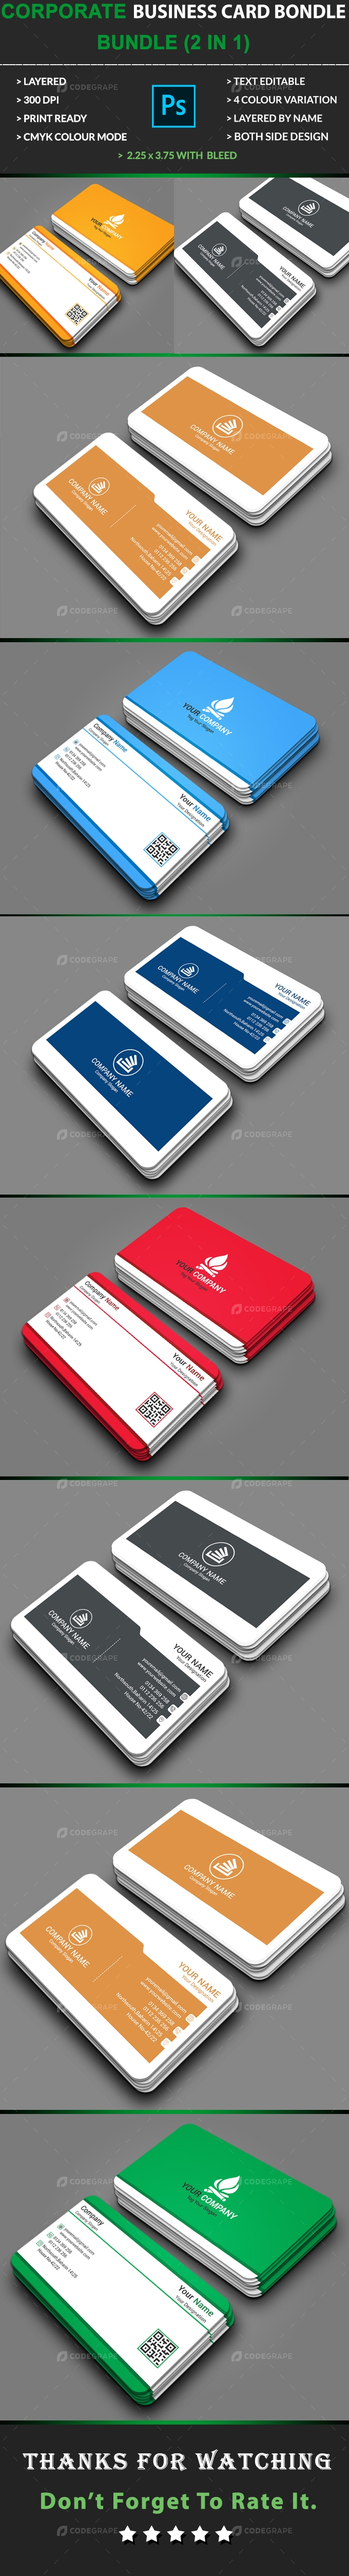 Corporate Business Card Bundle (2 in 1)